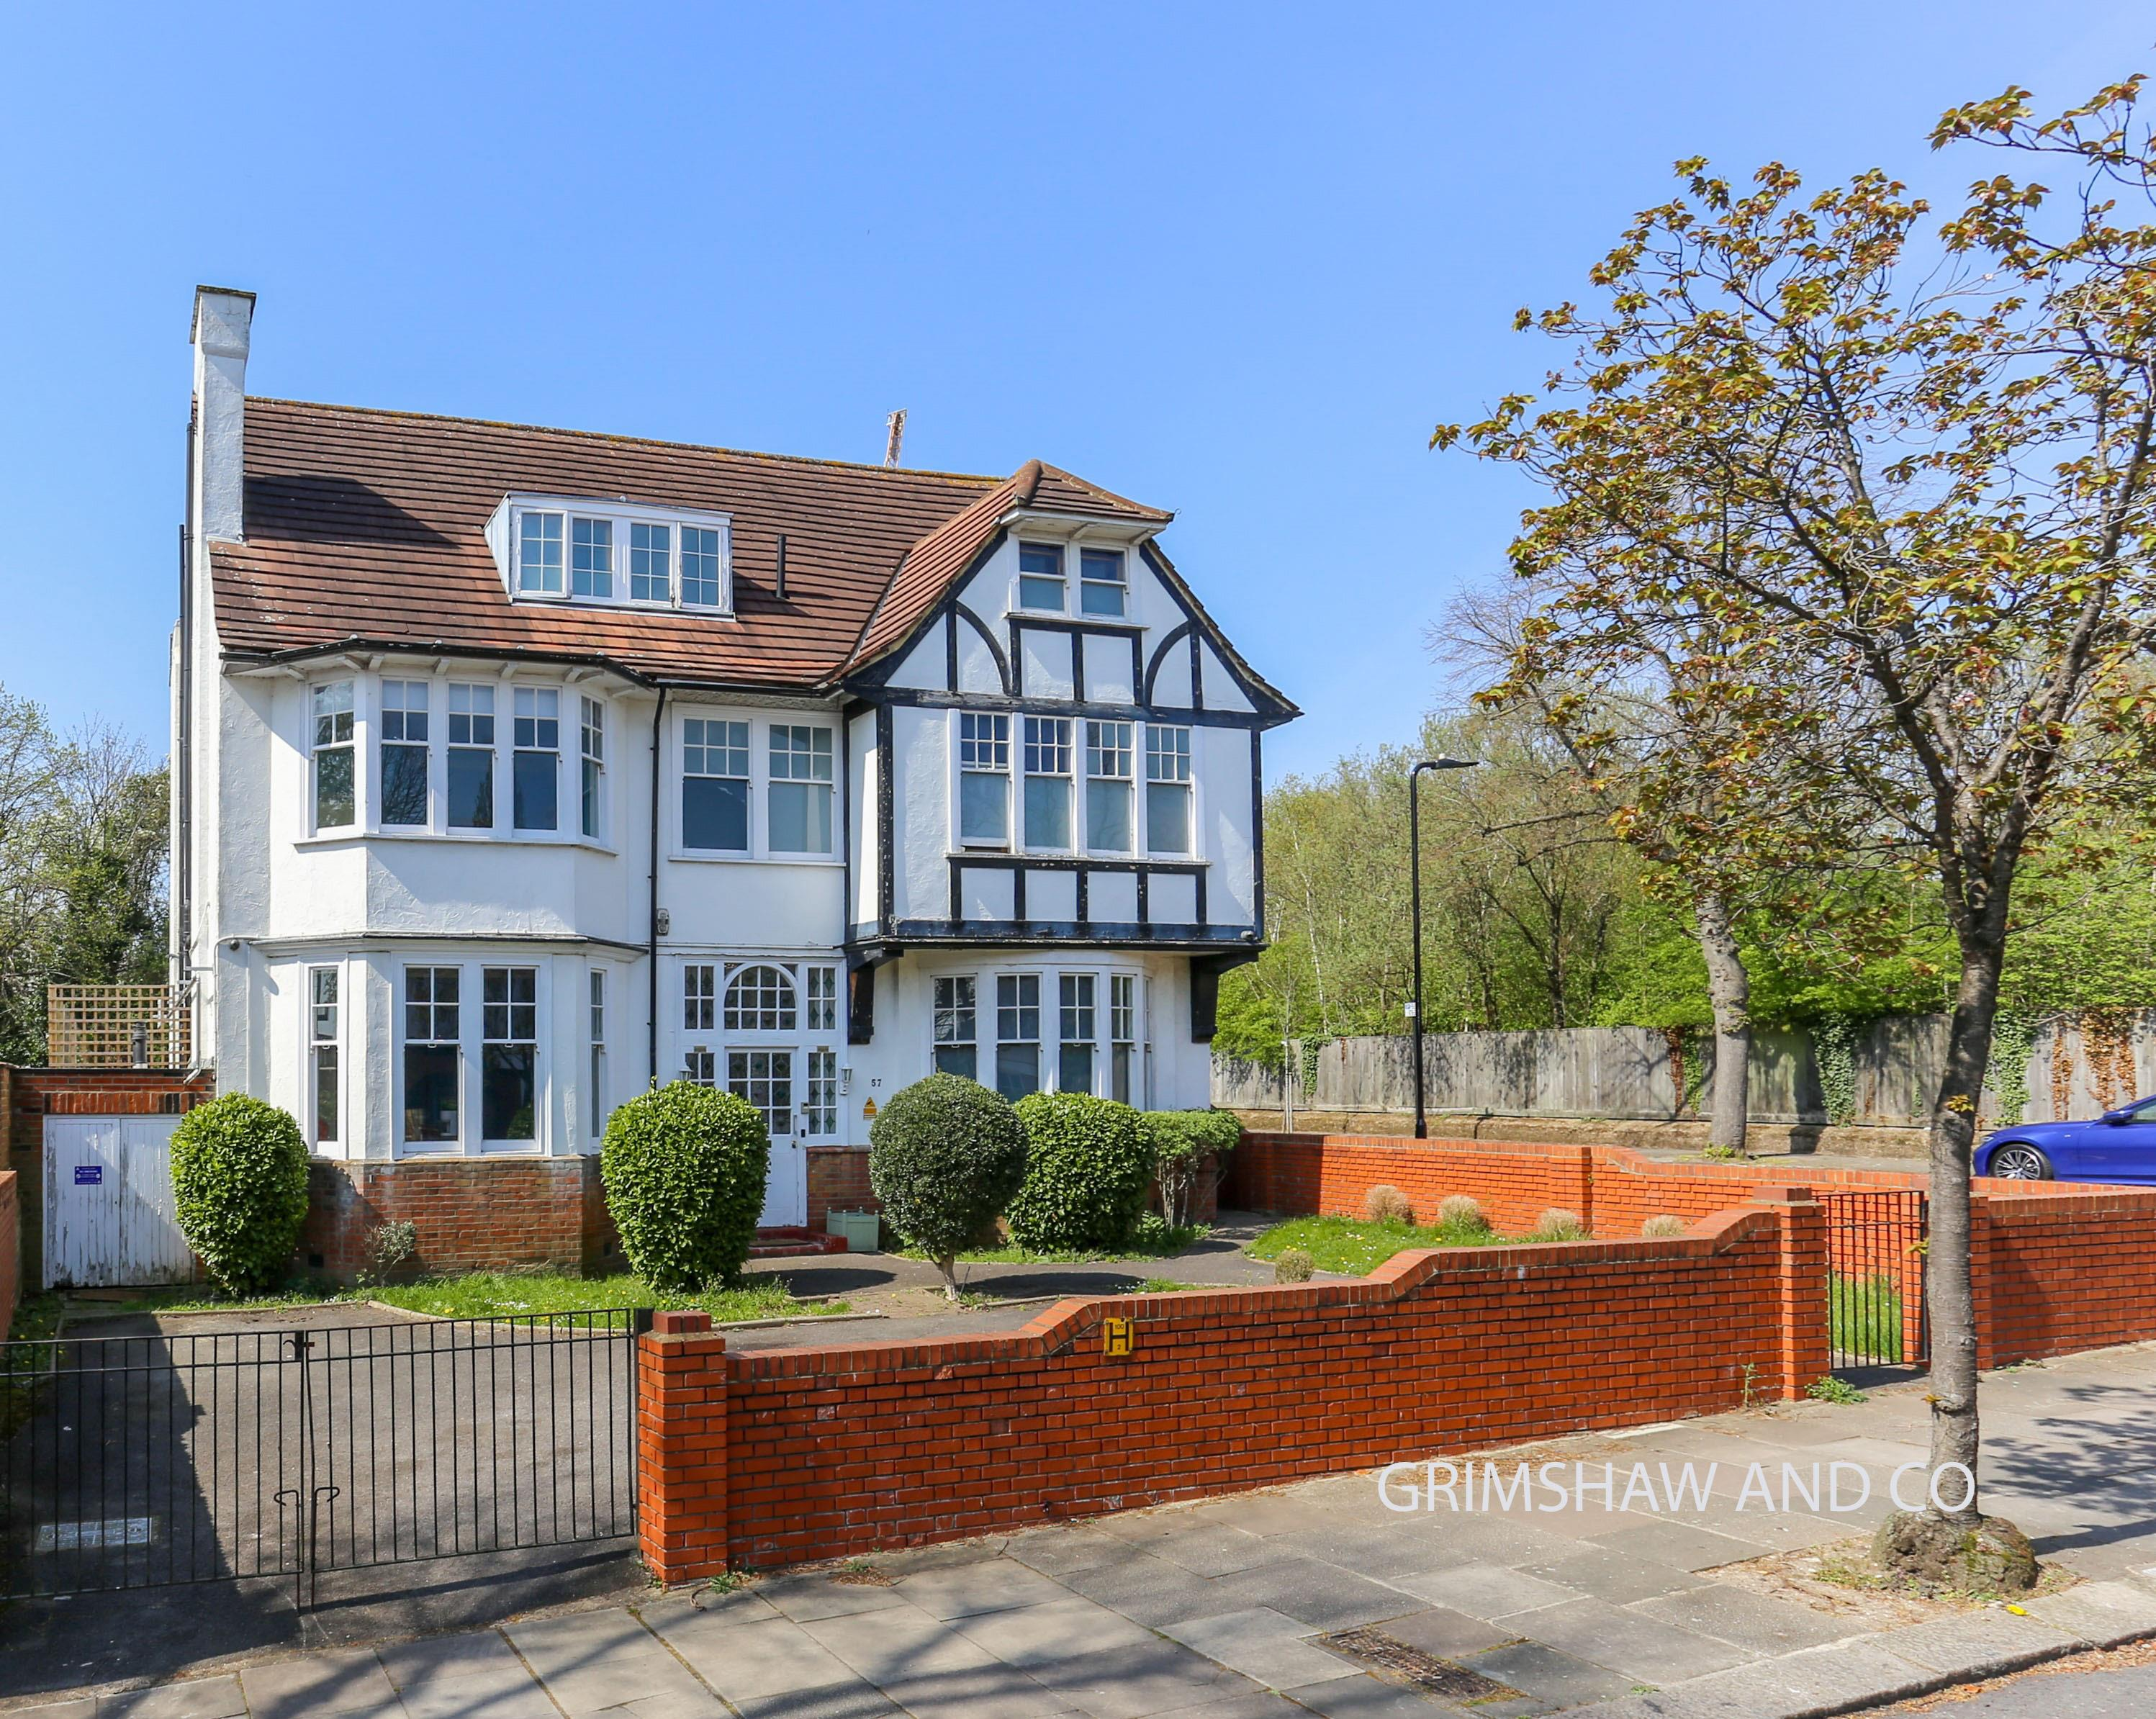 Sold - Corfton Road Ealing W5